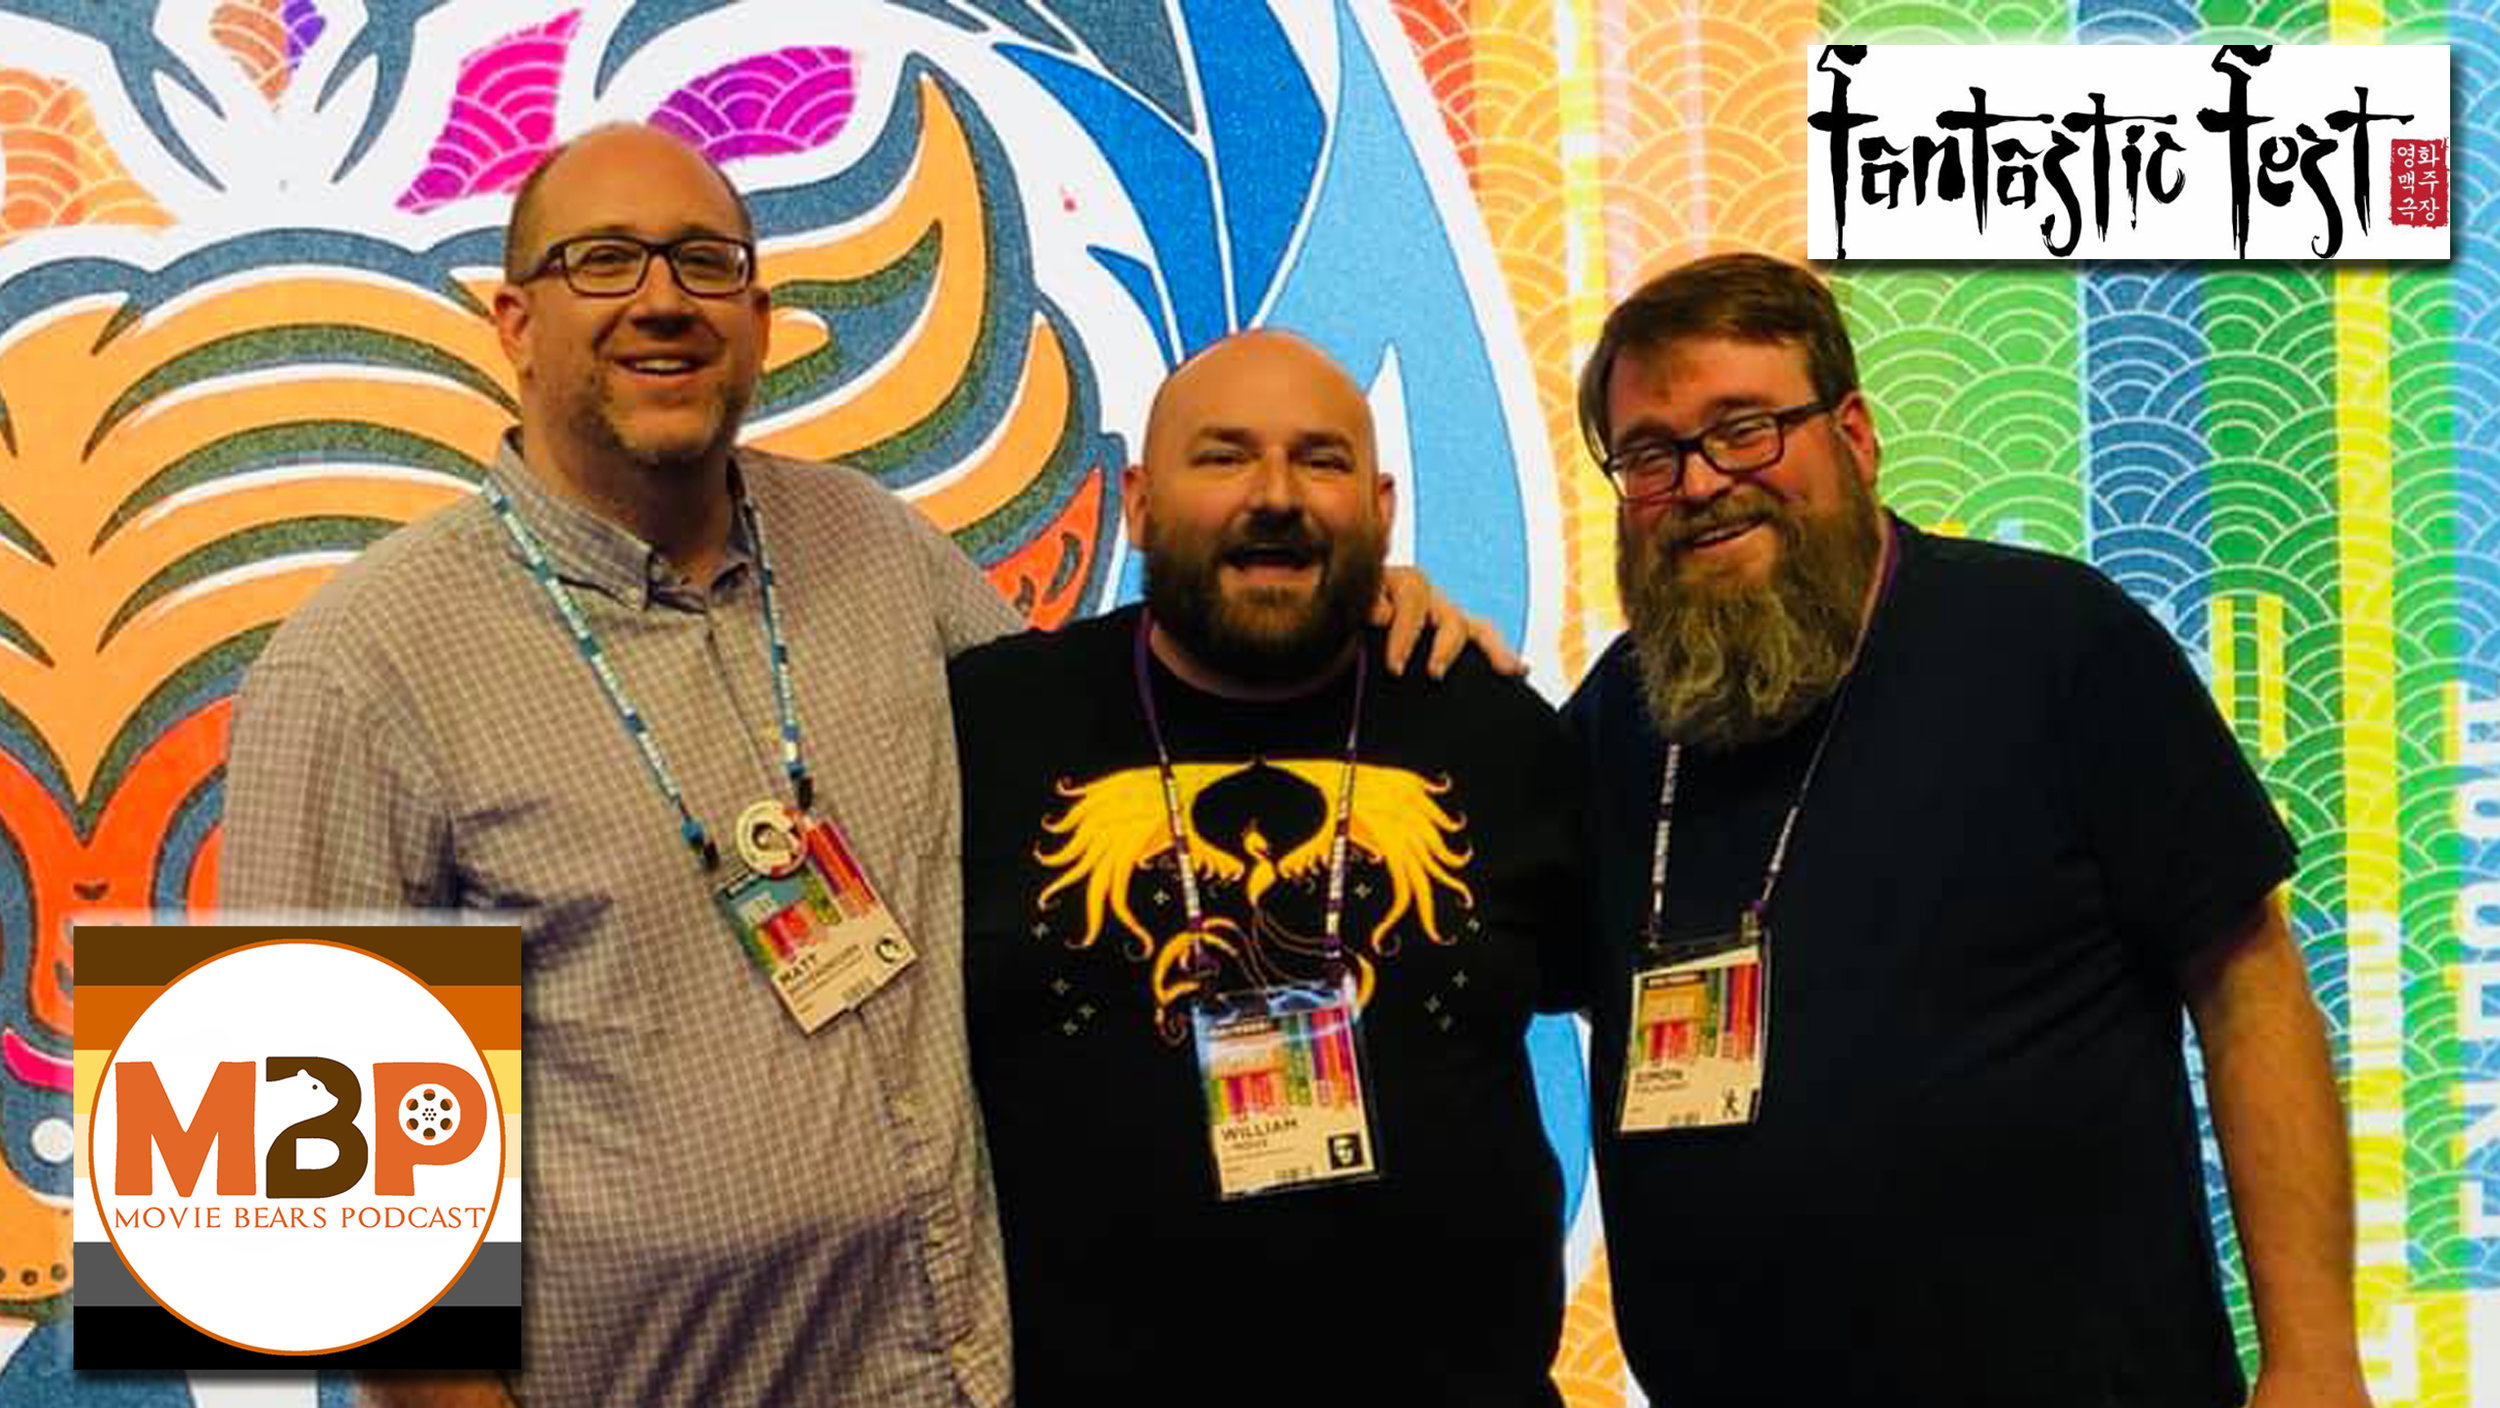 MBP e296 - Fantastic Fest 2018 (9/28/18)    Chaos Reigns at Fantastic Fest, the largest genre film festival in the United States. This year, Movie Bear Will was joined by guest co-hosts Matt Shiverdecker and Simon Tolhurst for an 8 day binge of horror, sci fi, and action film at the Alamo Drafthouse in Austin, Texas. Which films excited us? Click through to find out!